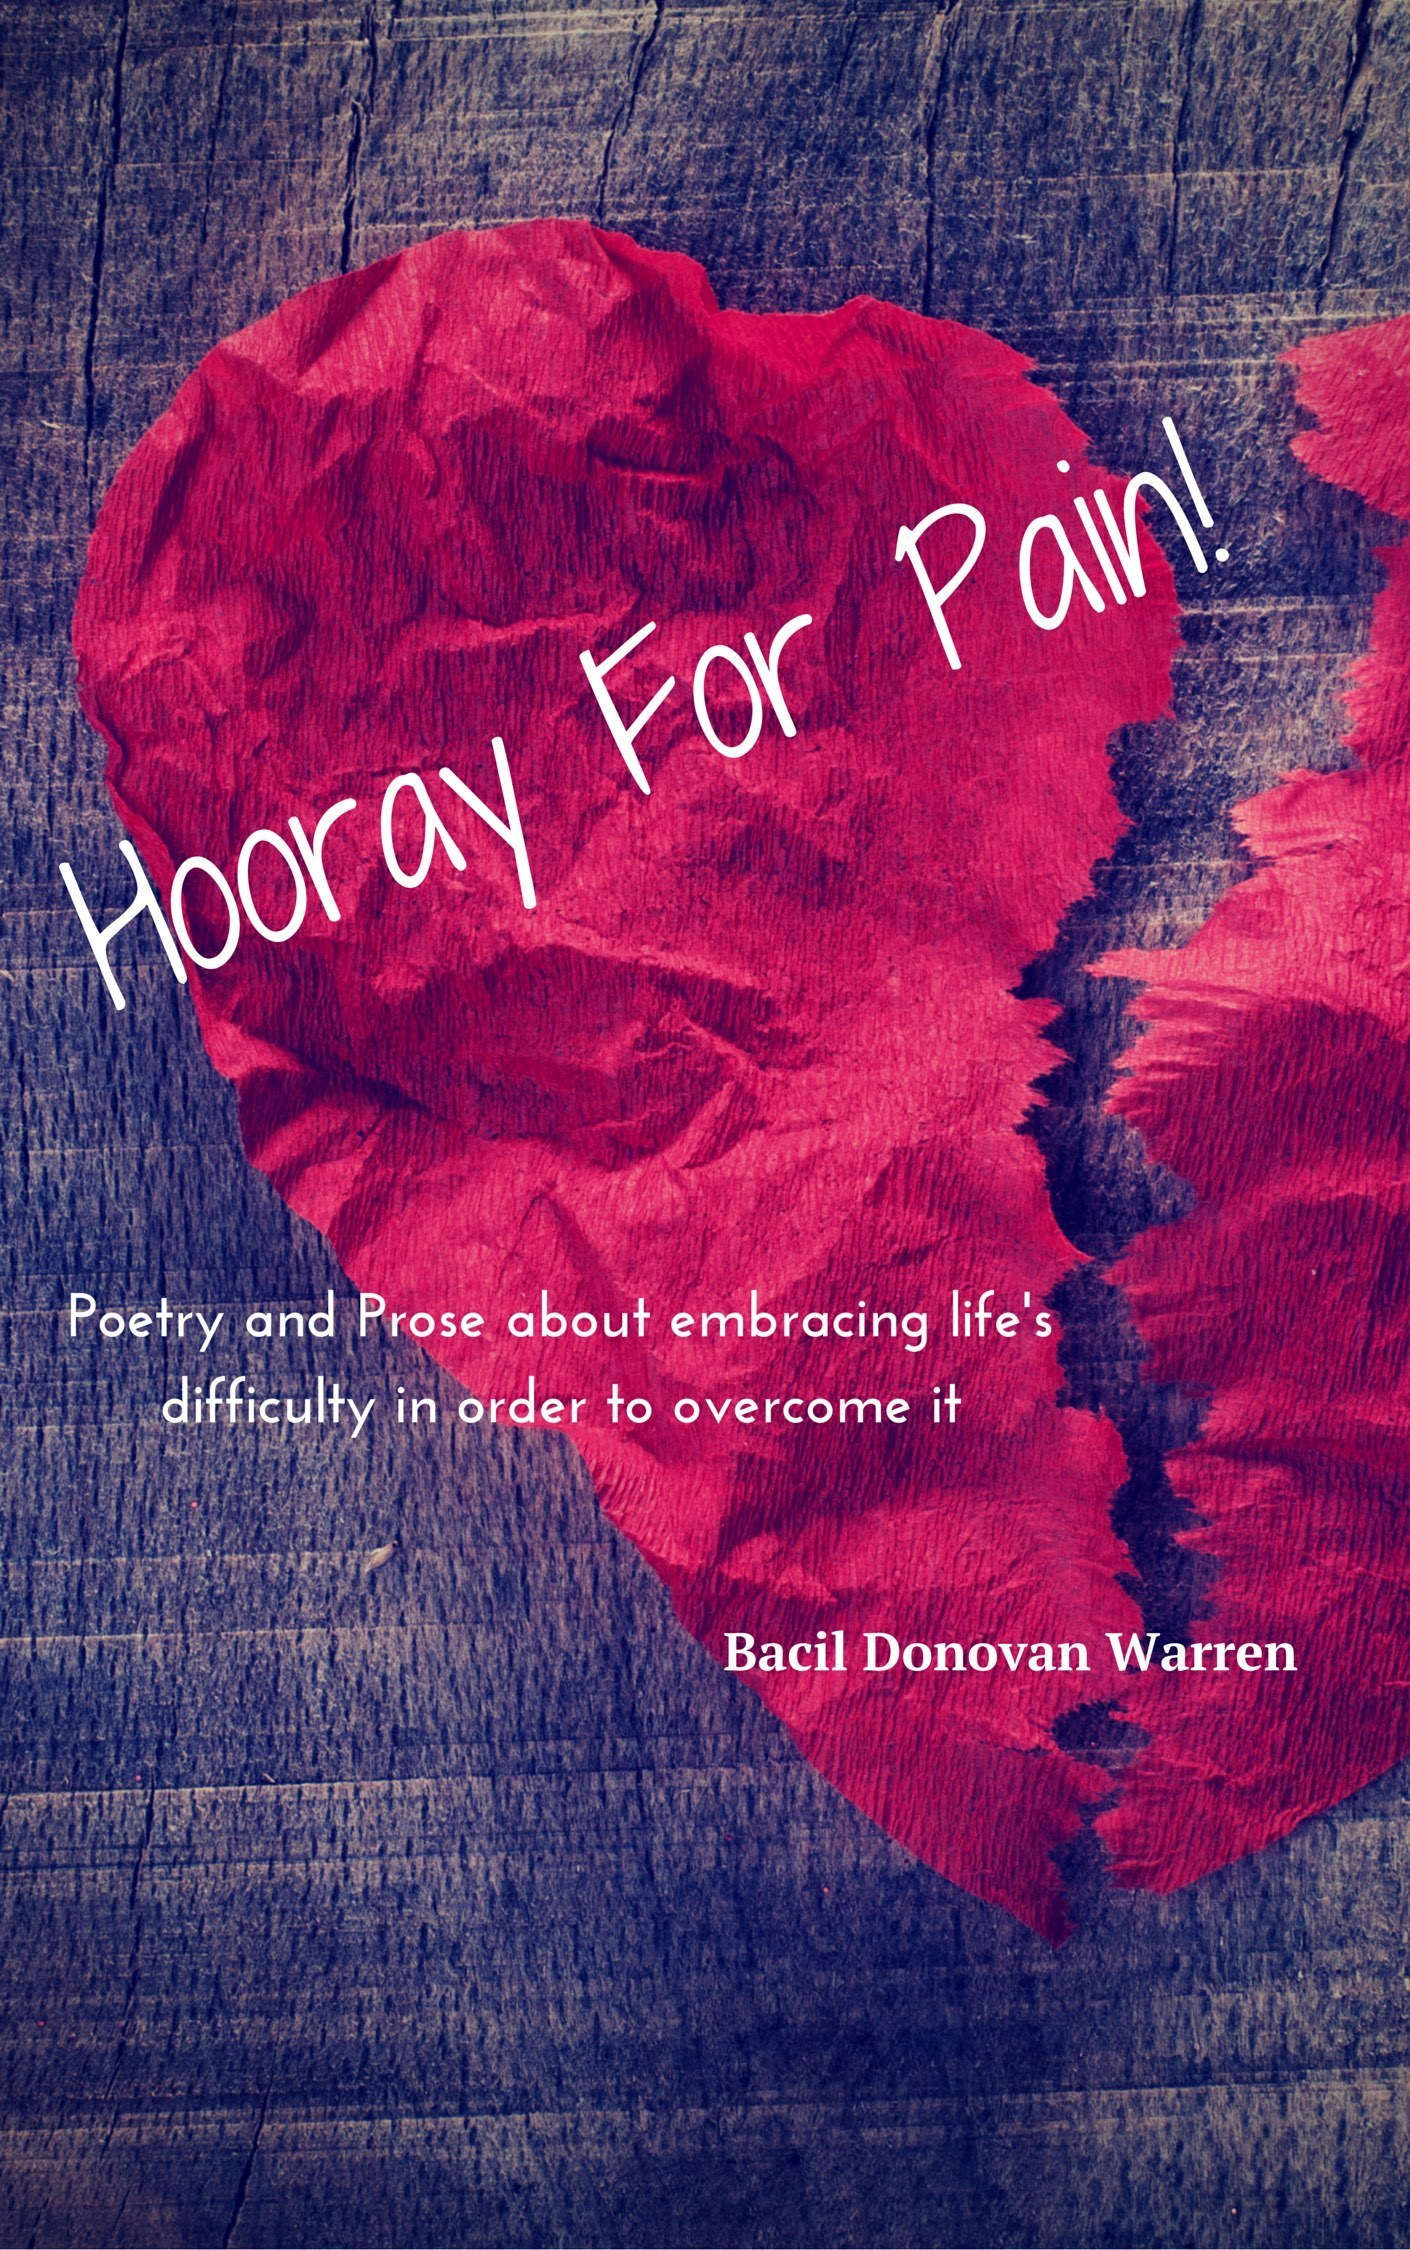 Hooray for Pain!: Poetry and prose about embracing lifes difficulty in order to overcome it. Bacil Donovan Warren